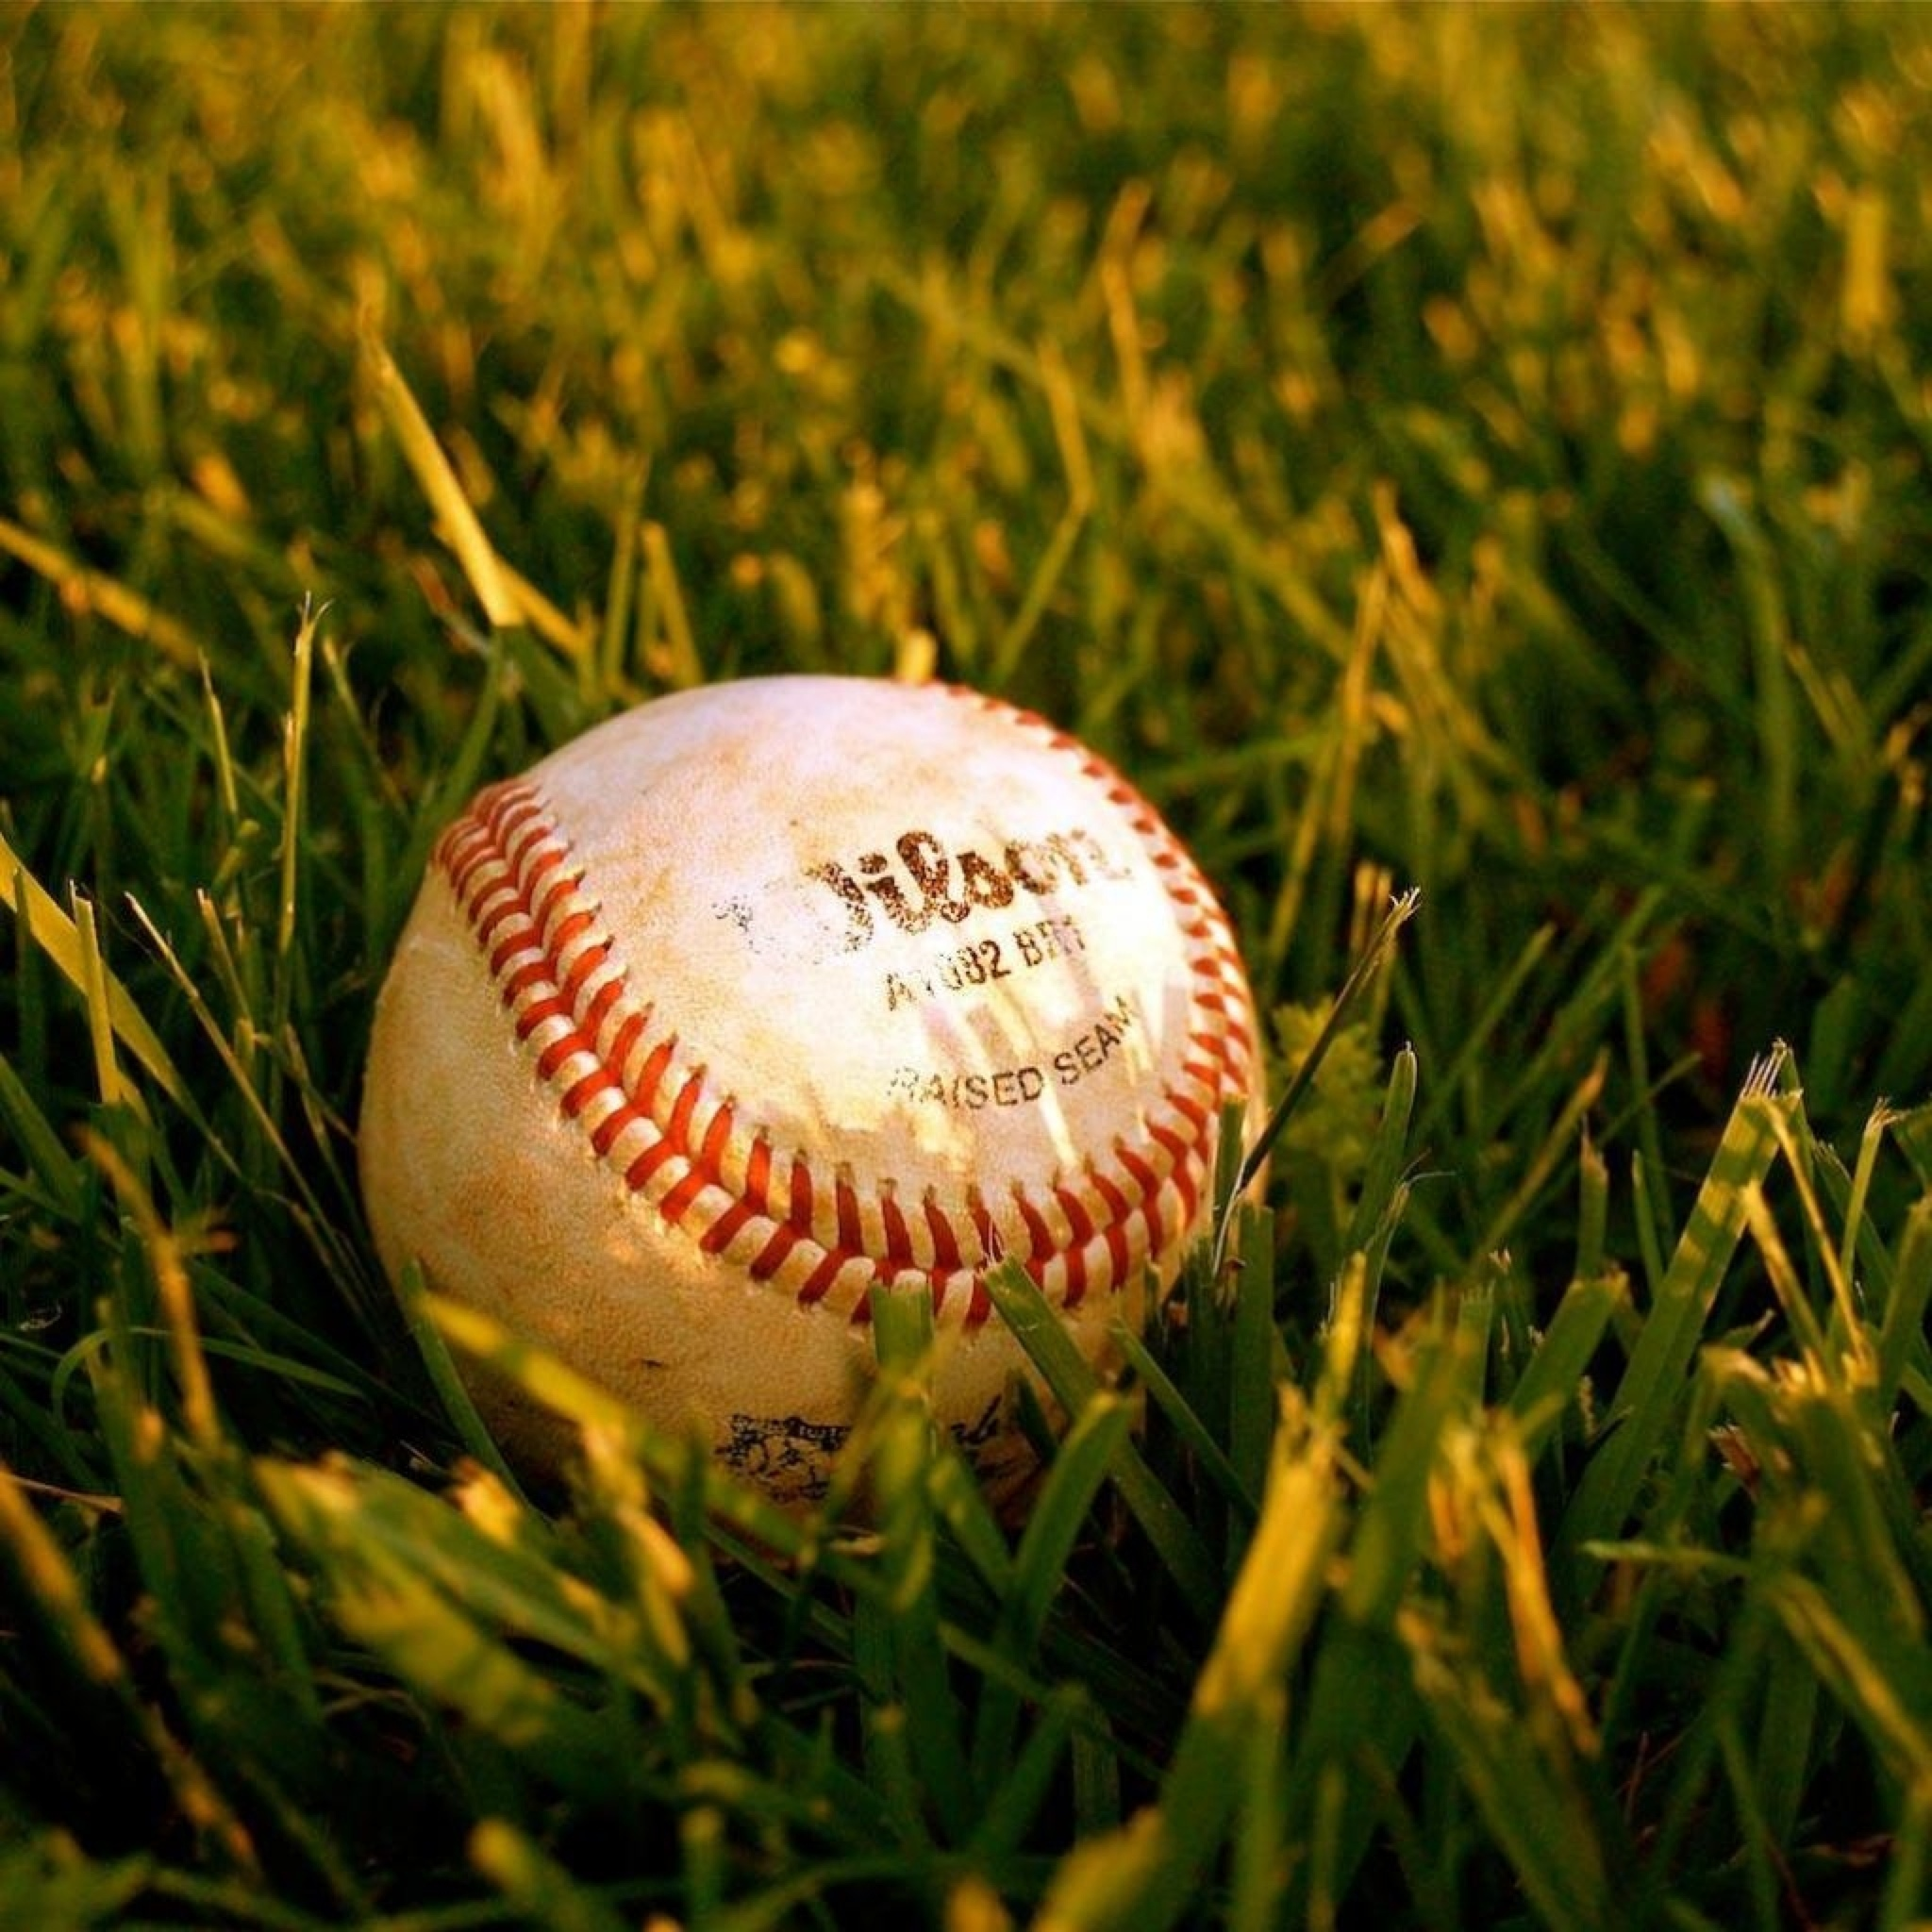 The baseball in the Grass 3W iPad.jpg  The baseball in the Grass   iPad